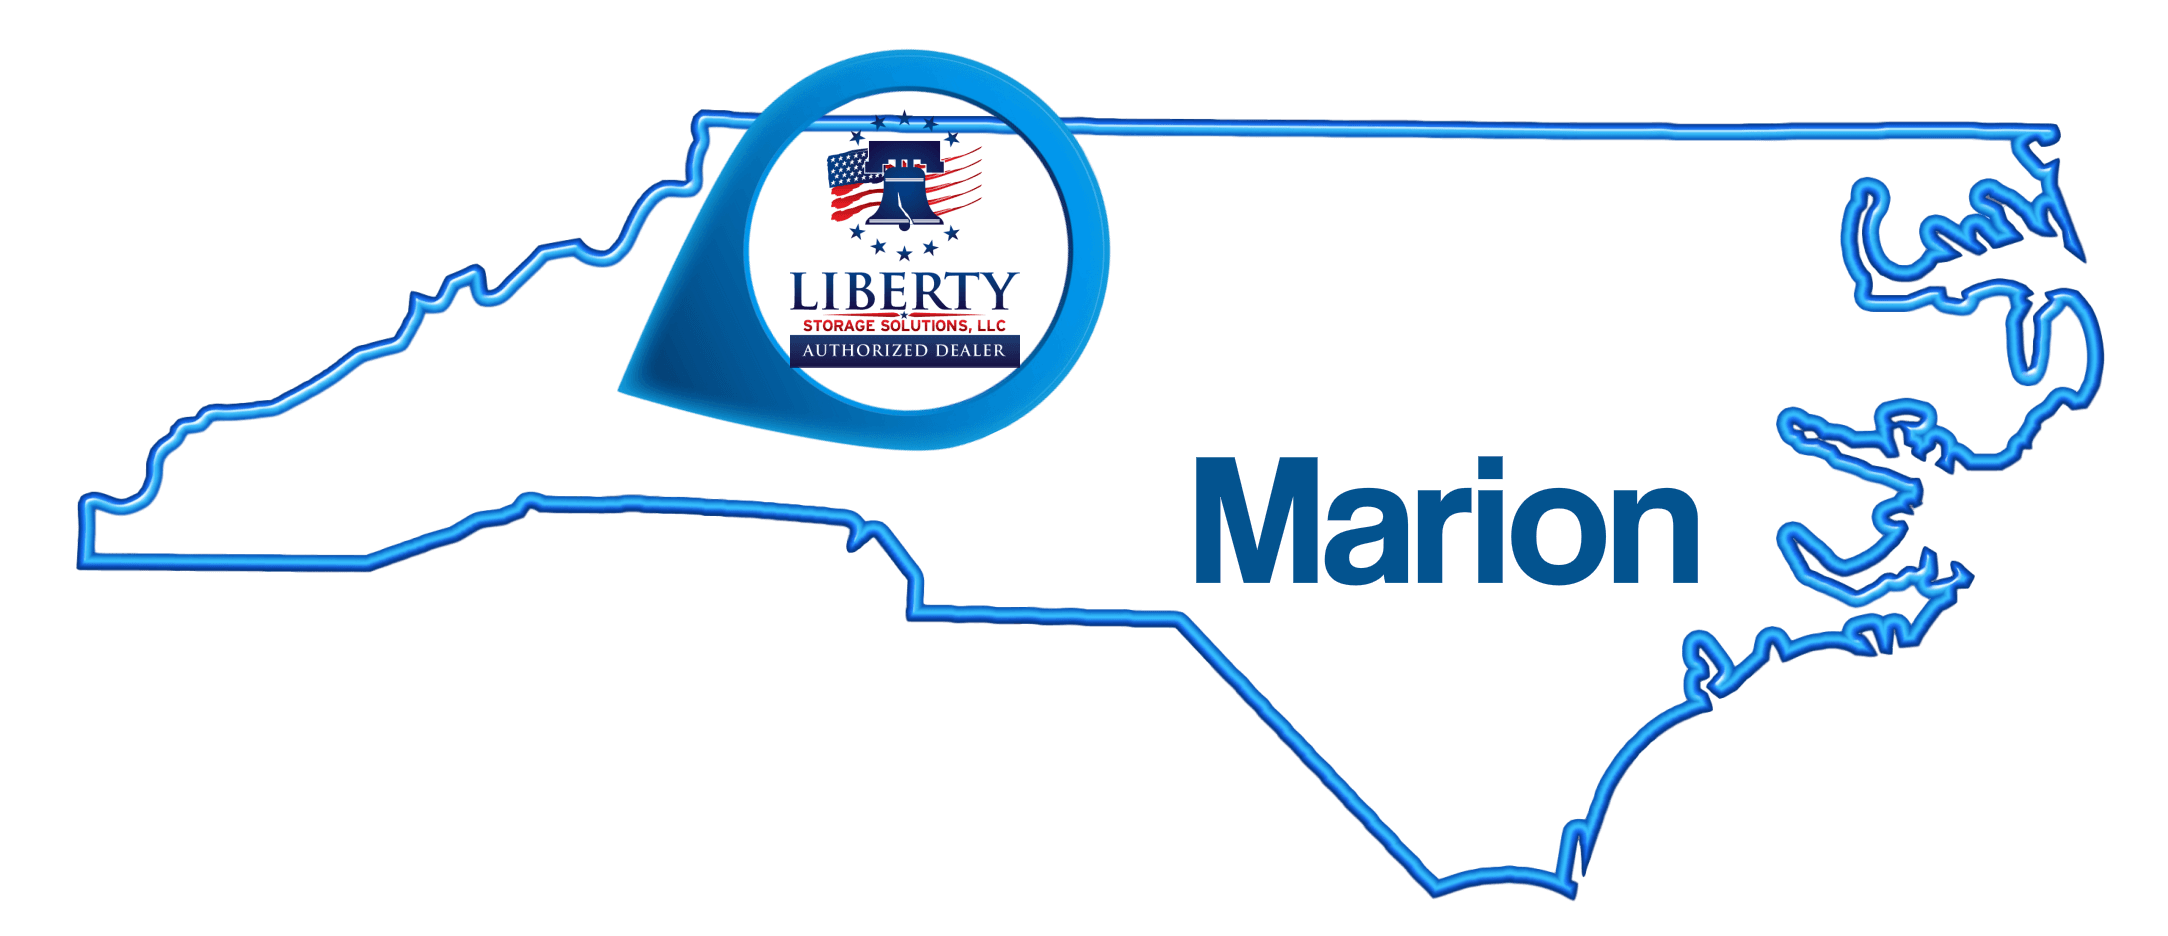 Marion map2.png